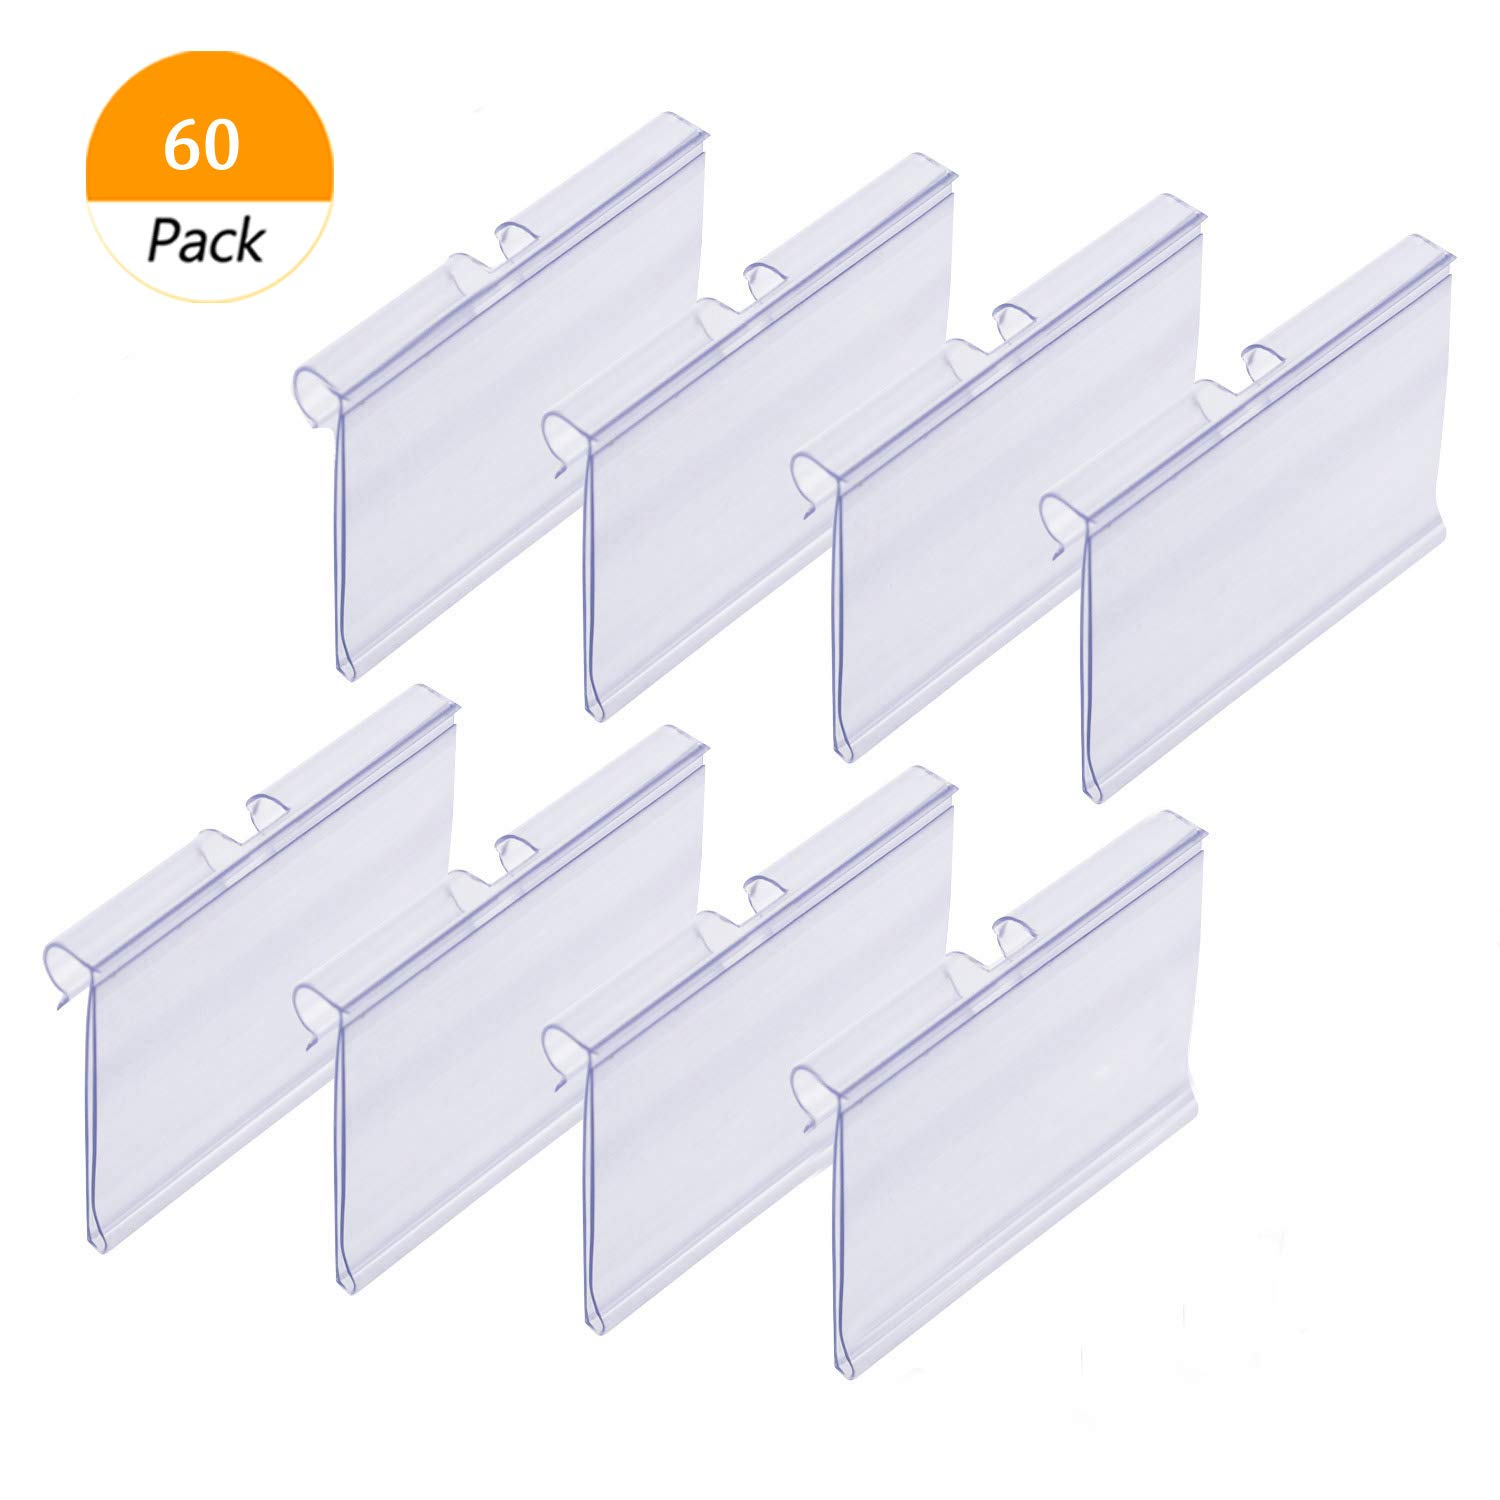 Darmal 60 PCS Clear Plastic Label Holder, Wire Shelf Retail Price Tag Label Card Merchandise Sign Display Holder (6cm x 4.2cm)